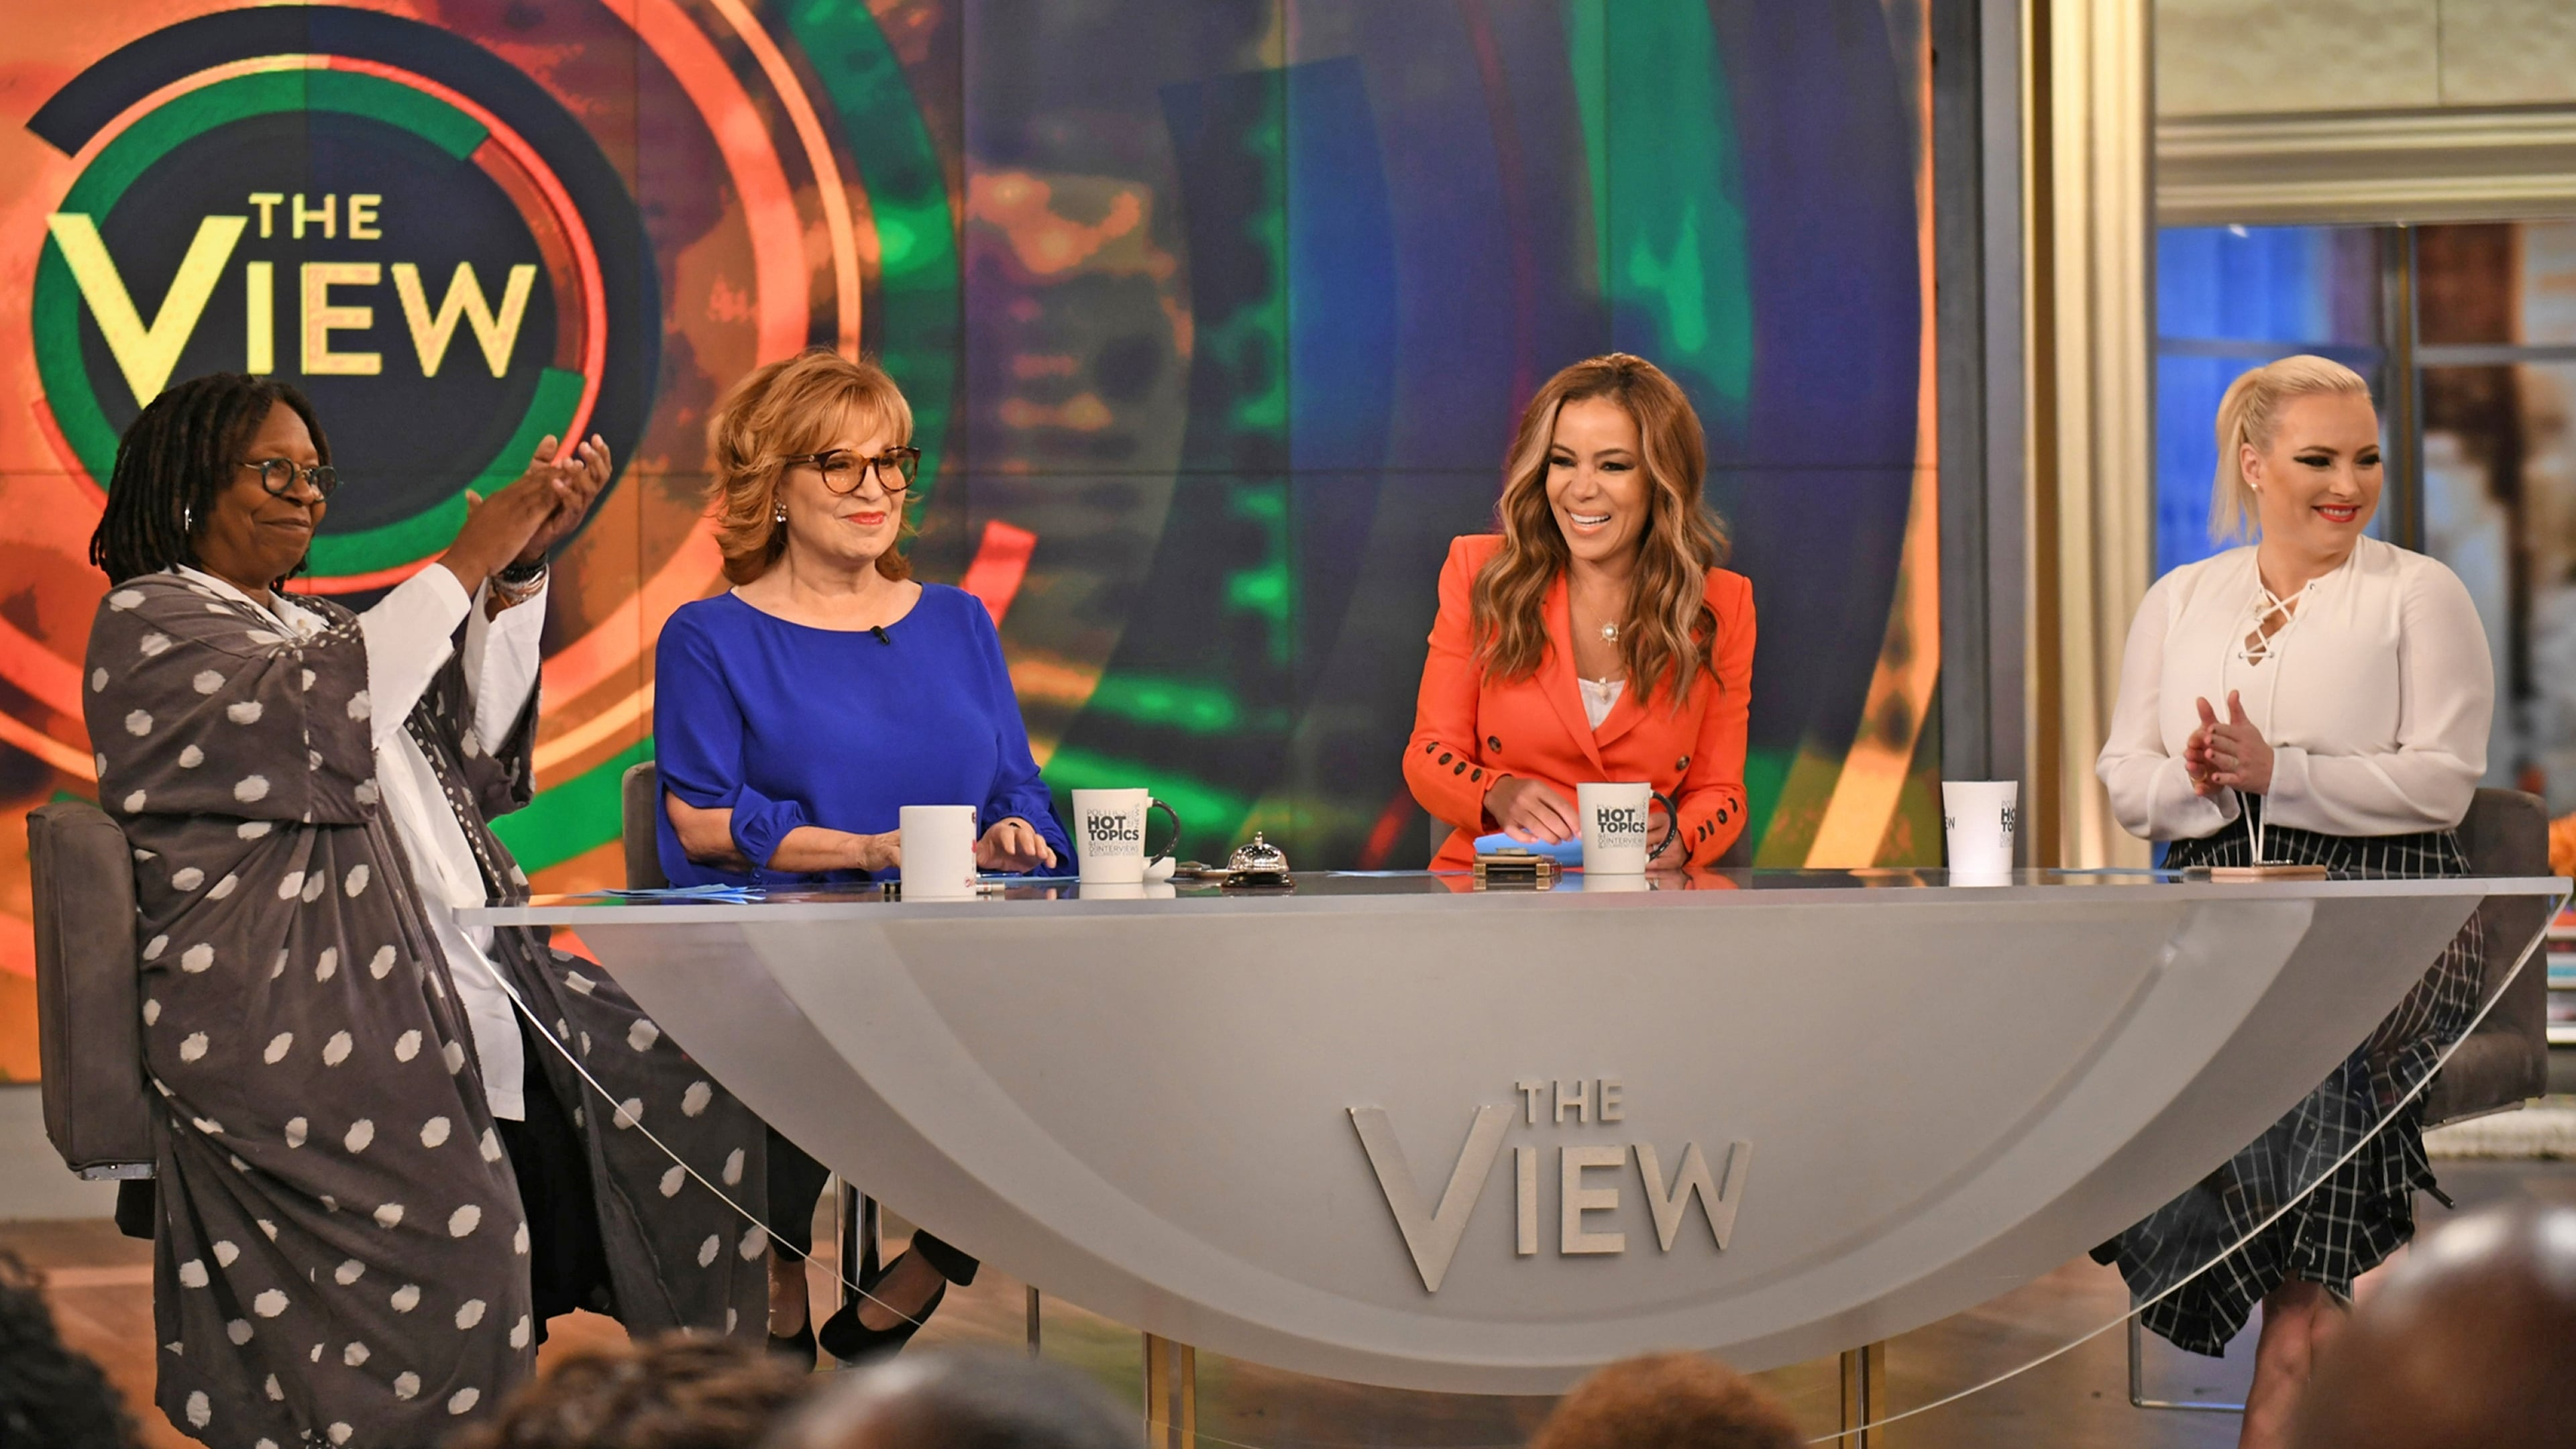 The View - Season 3 Episode 69 : Season 3, Episode 69